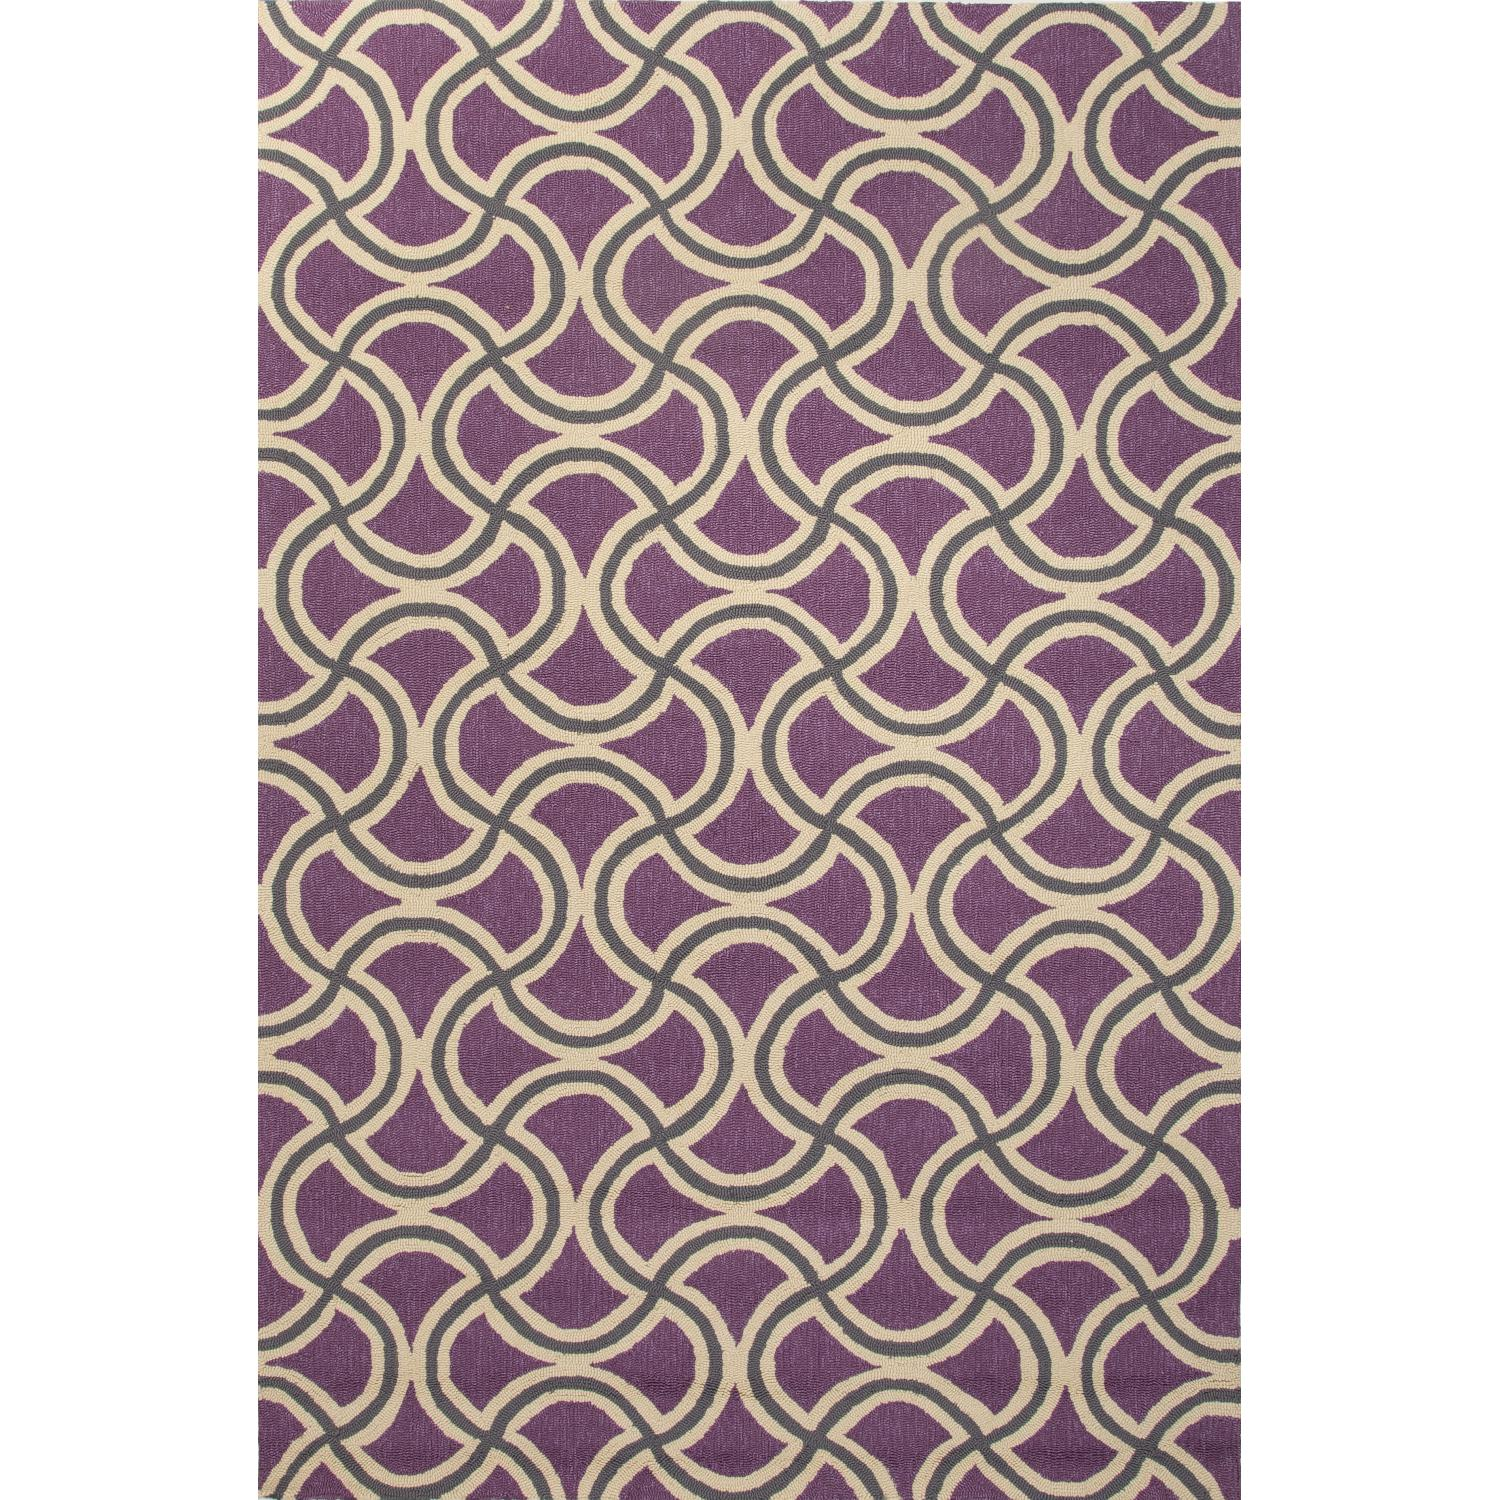 Picture of Jaipur Rugs Barcelona Barbells 2 X 3 Indoor/Outdoor Rug - Purple/Taupe